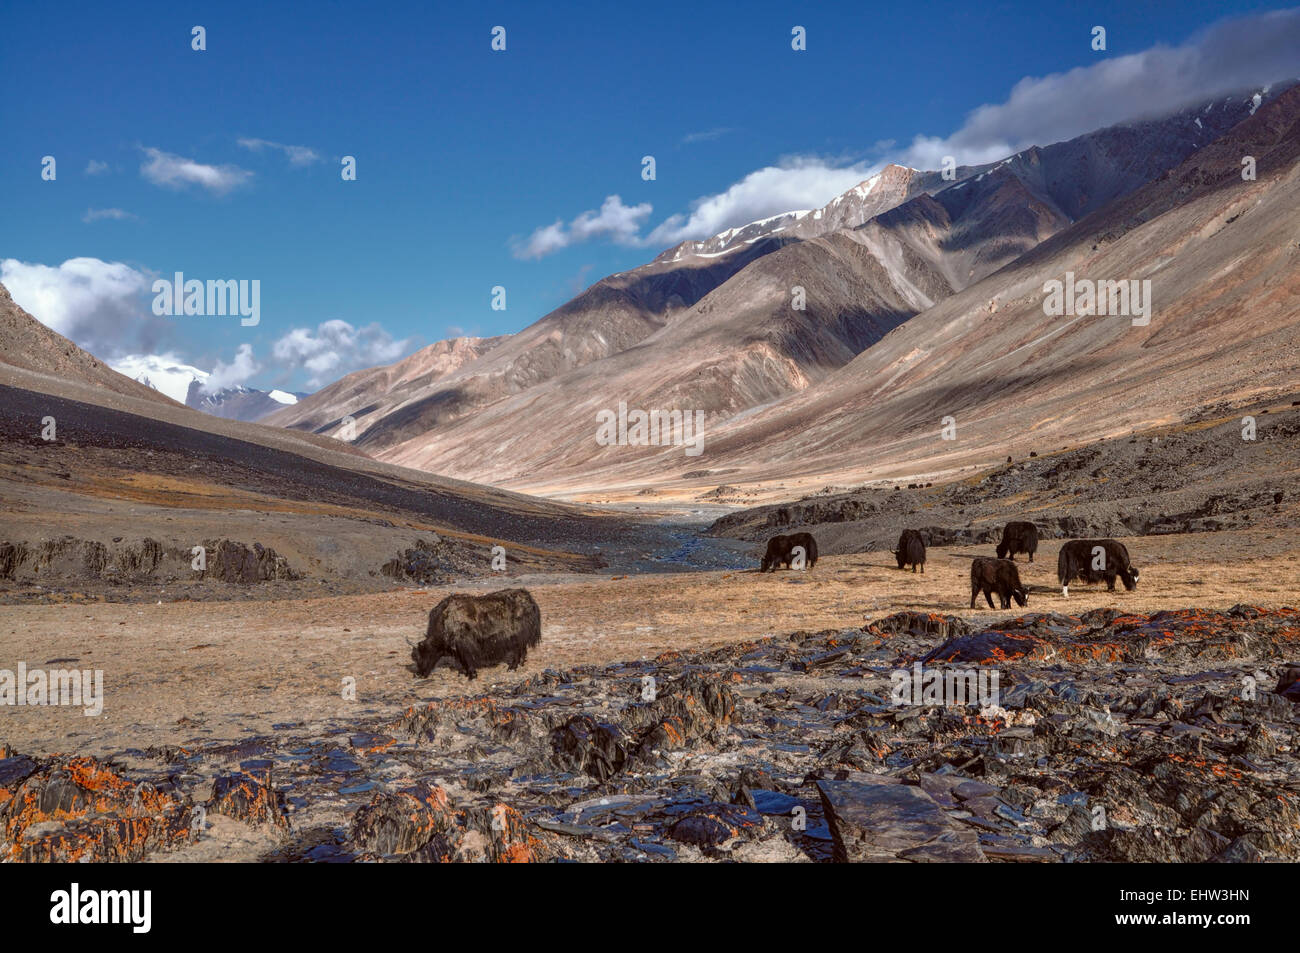 Herd of yaks in picturesque Pamir mountains in Tajikistan - Stock Image